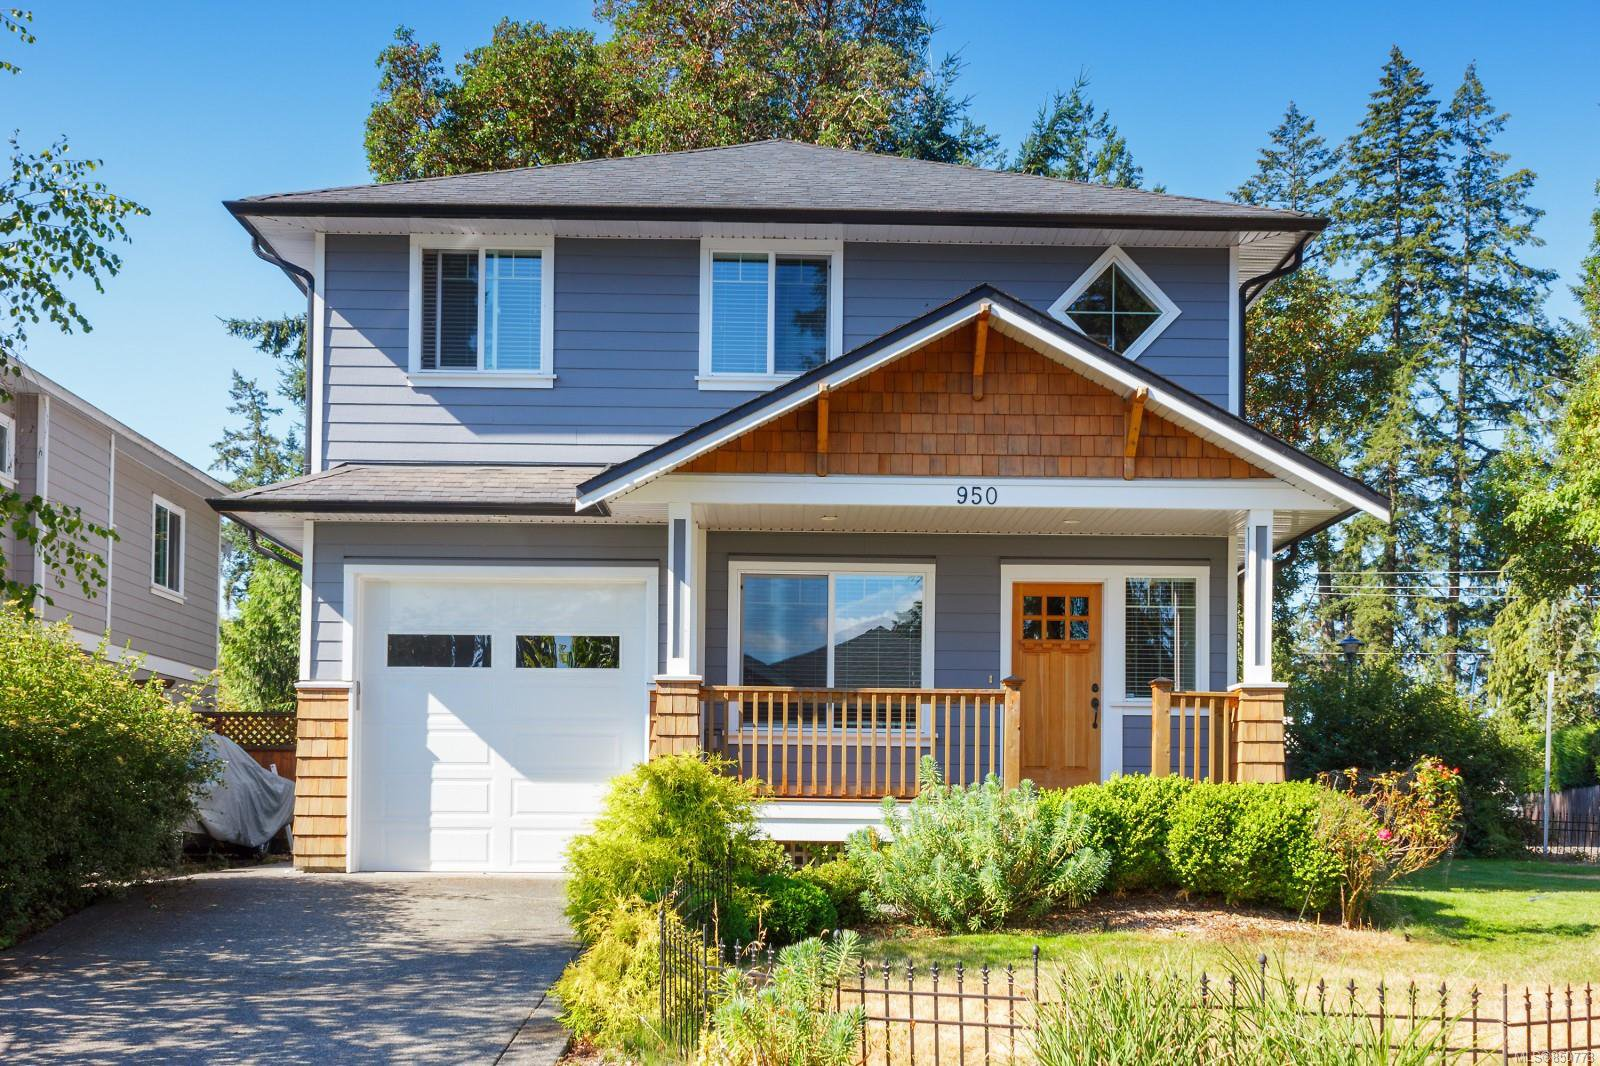 Main Photo: 950 Colbourne Gdns in : La Glen Lake House for sale (Langford)  : MLS®# 850773